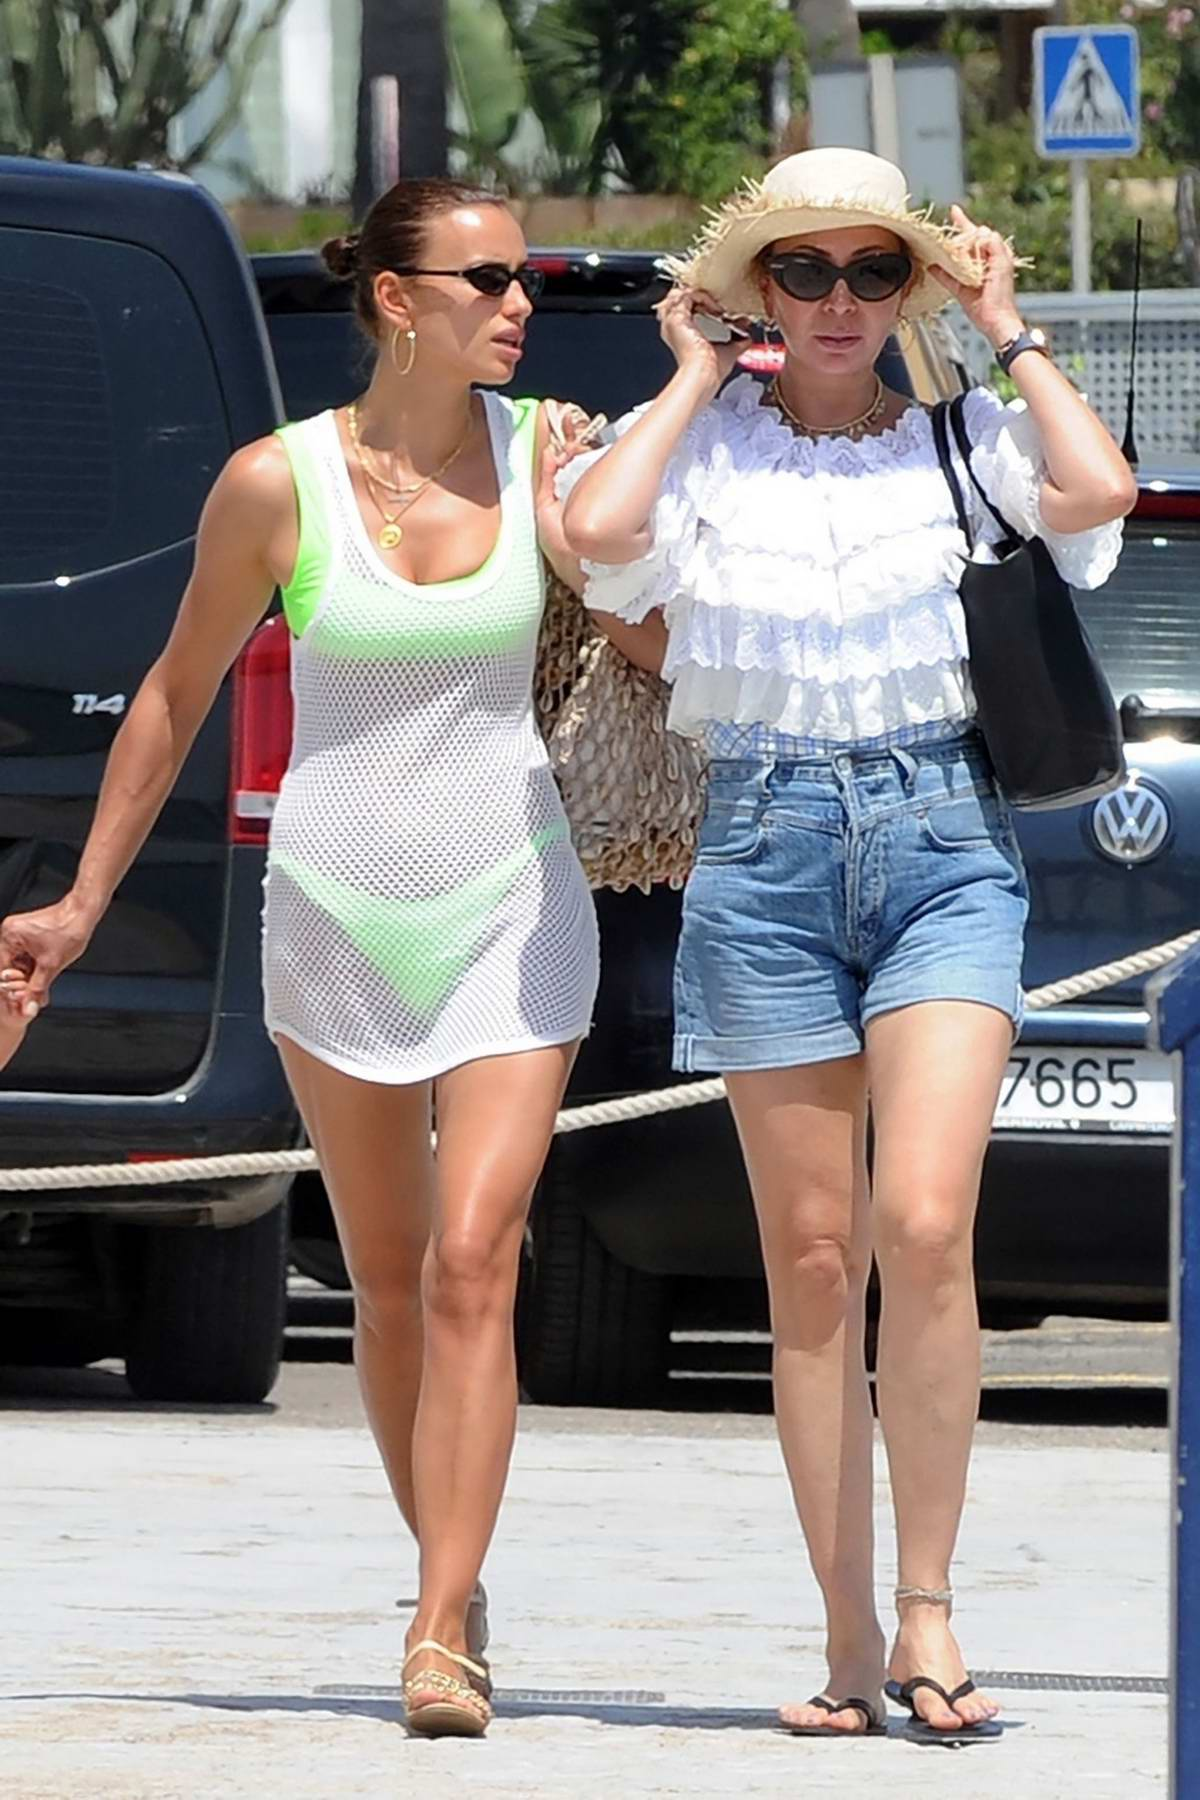 Irina Shayk seen wearing a neon green bikini while on vacation in Ibiza, Spain